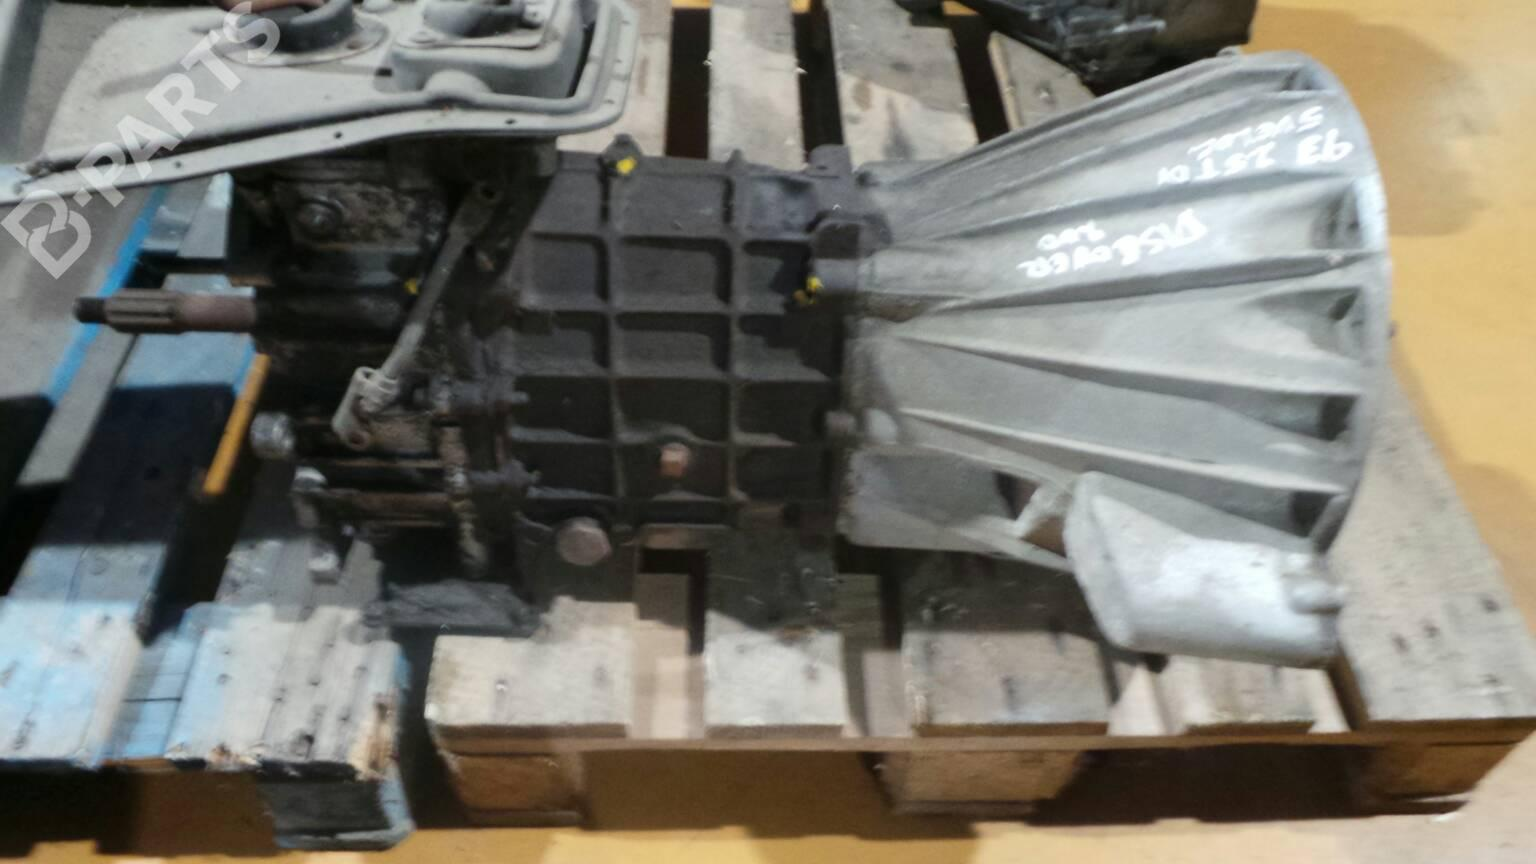 ... Manual Gearbox S/REF LAND ROVER, DISCOVERY I (LJ) 2.5 TDI 4x4 ...